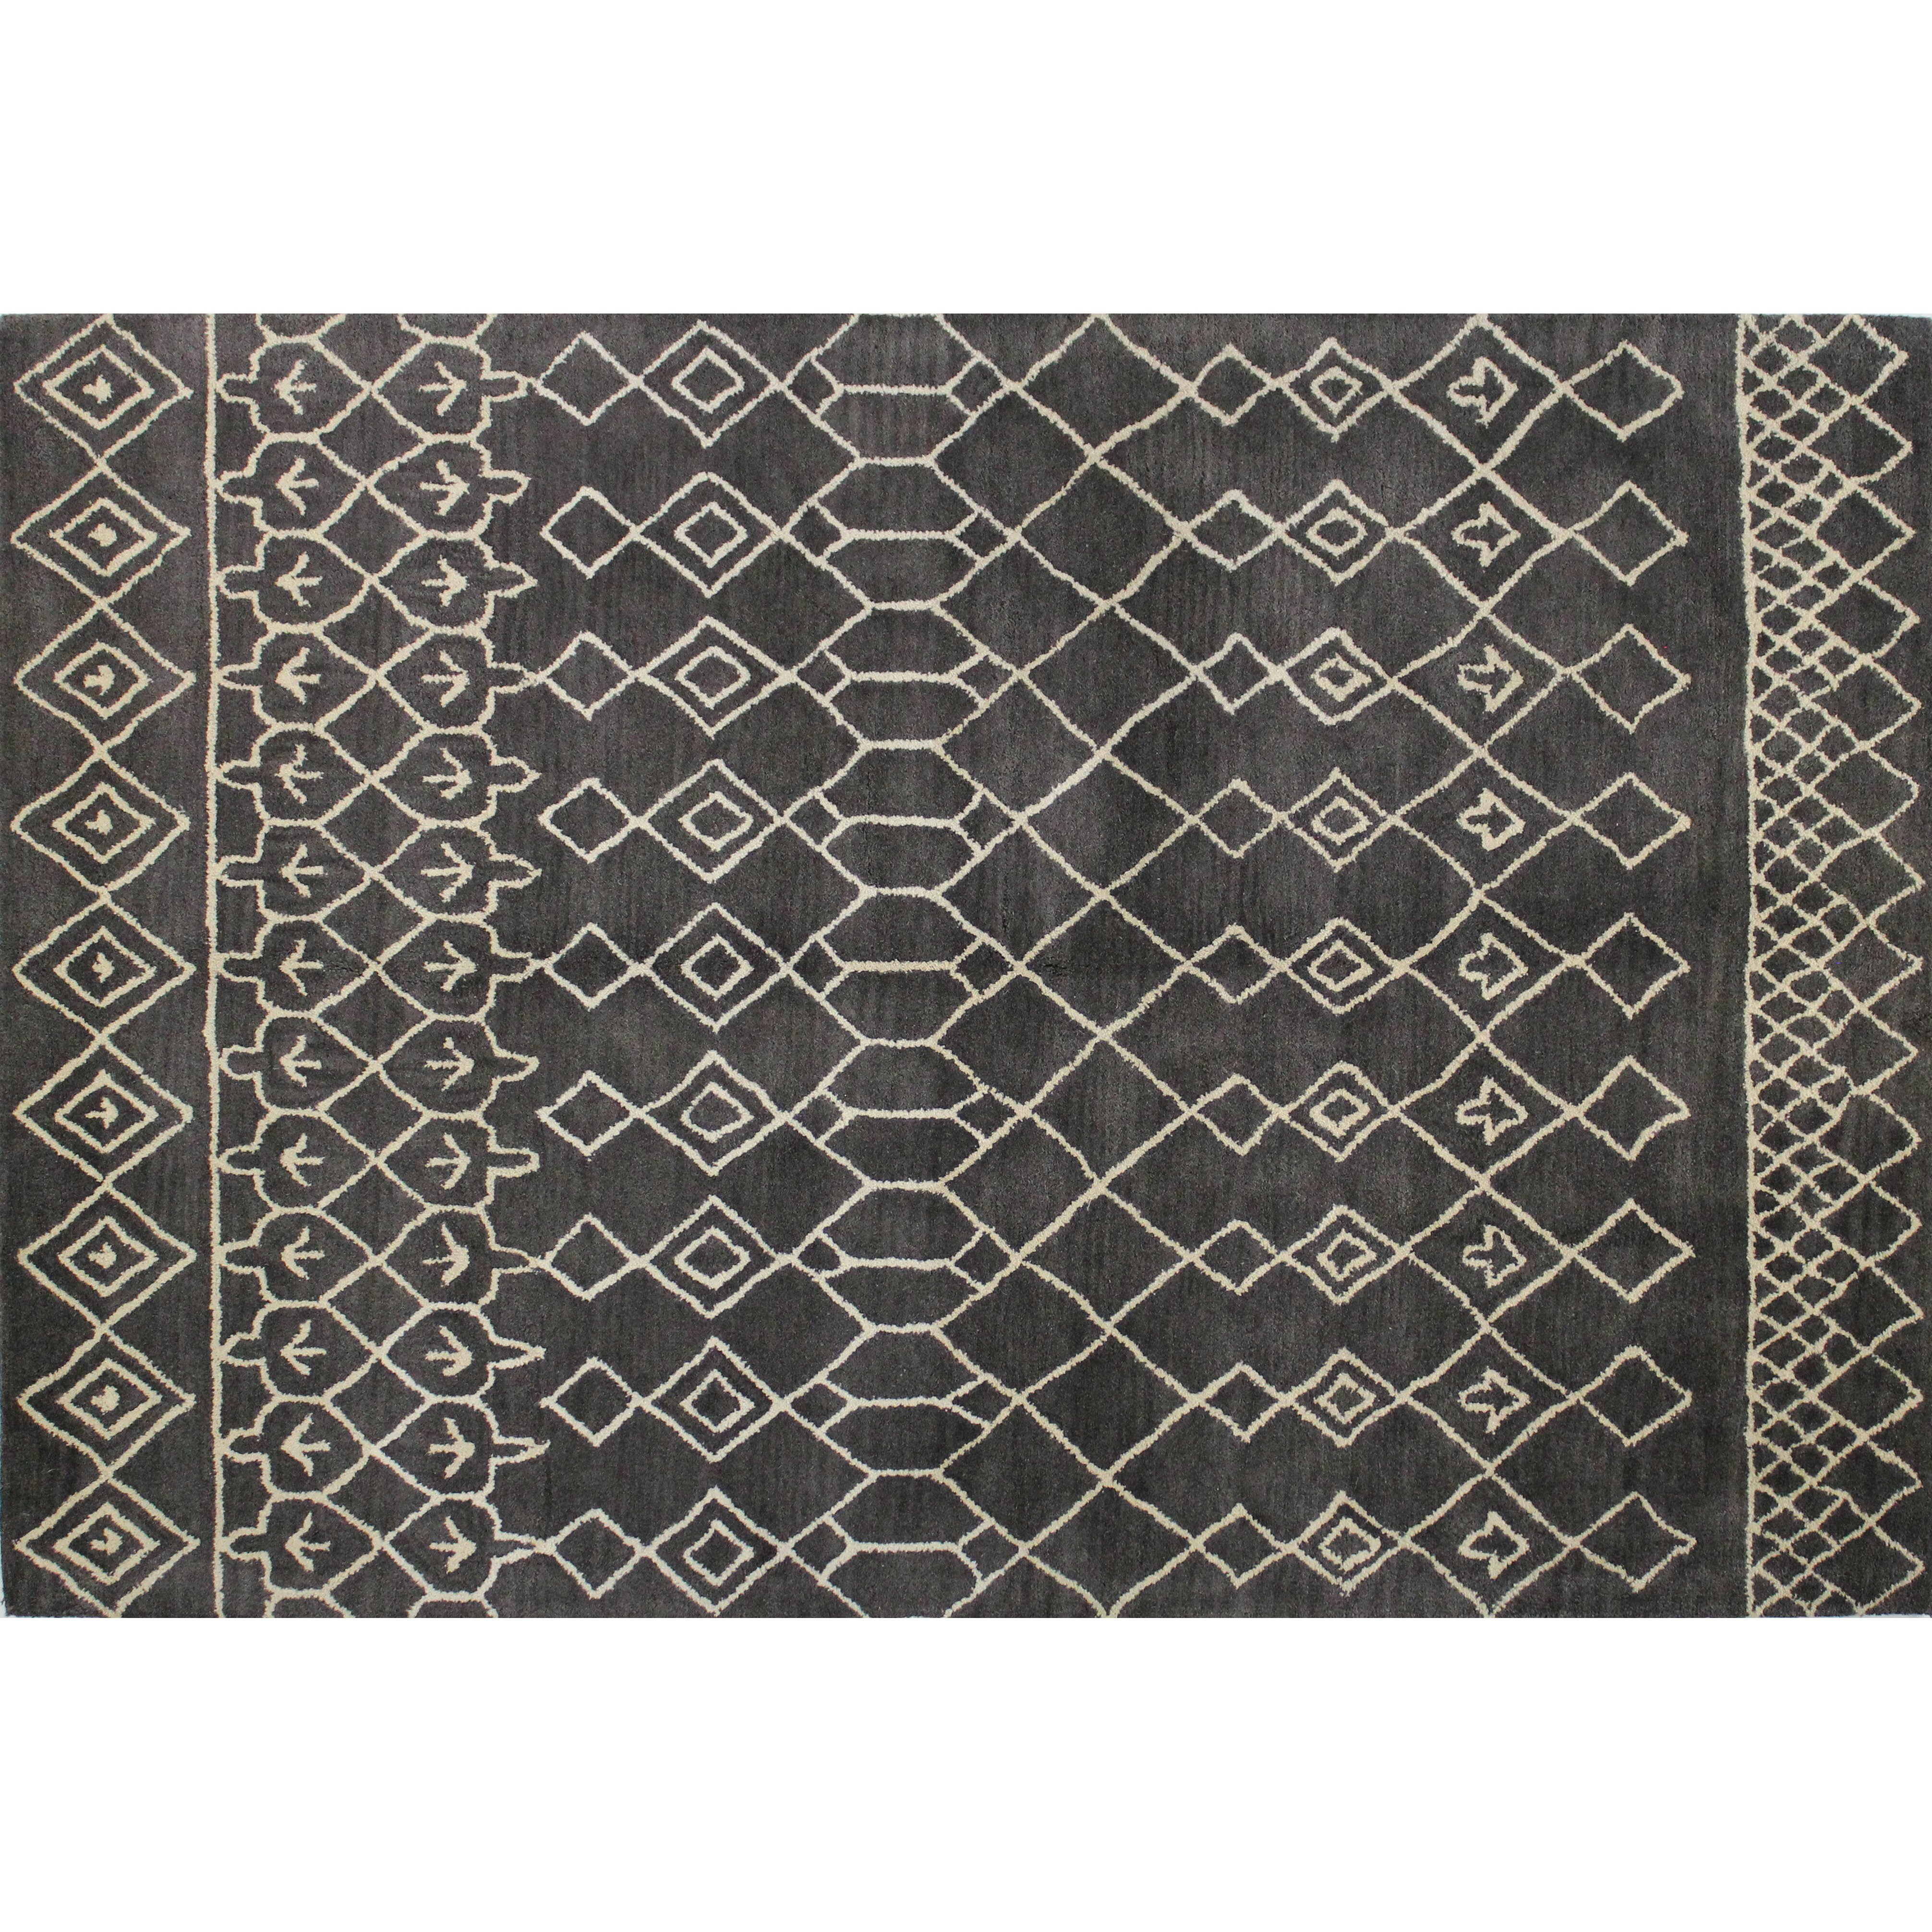 rugs area rugs runner area rugs dwellstudio sku dwl12593